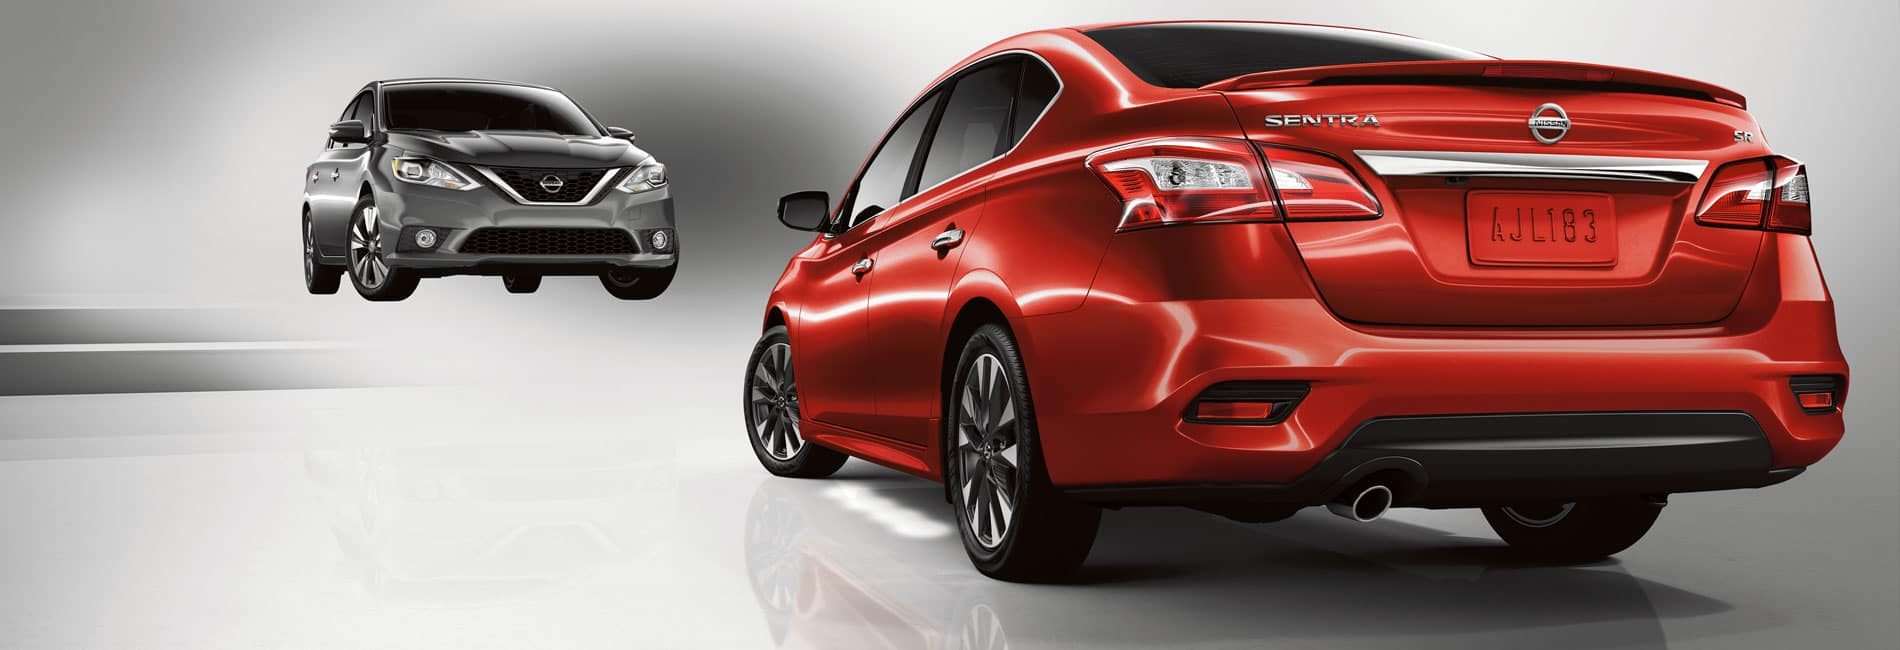 2019 Nissan Sentra Trims at Star Nissan